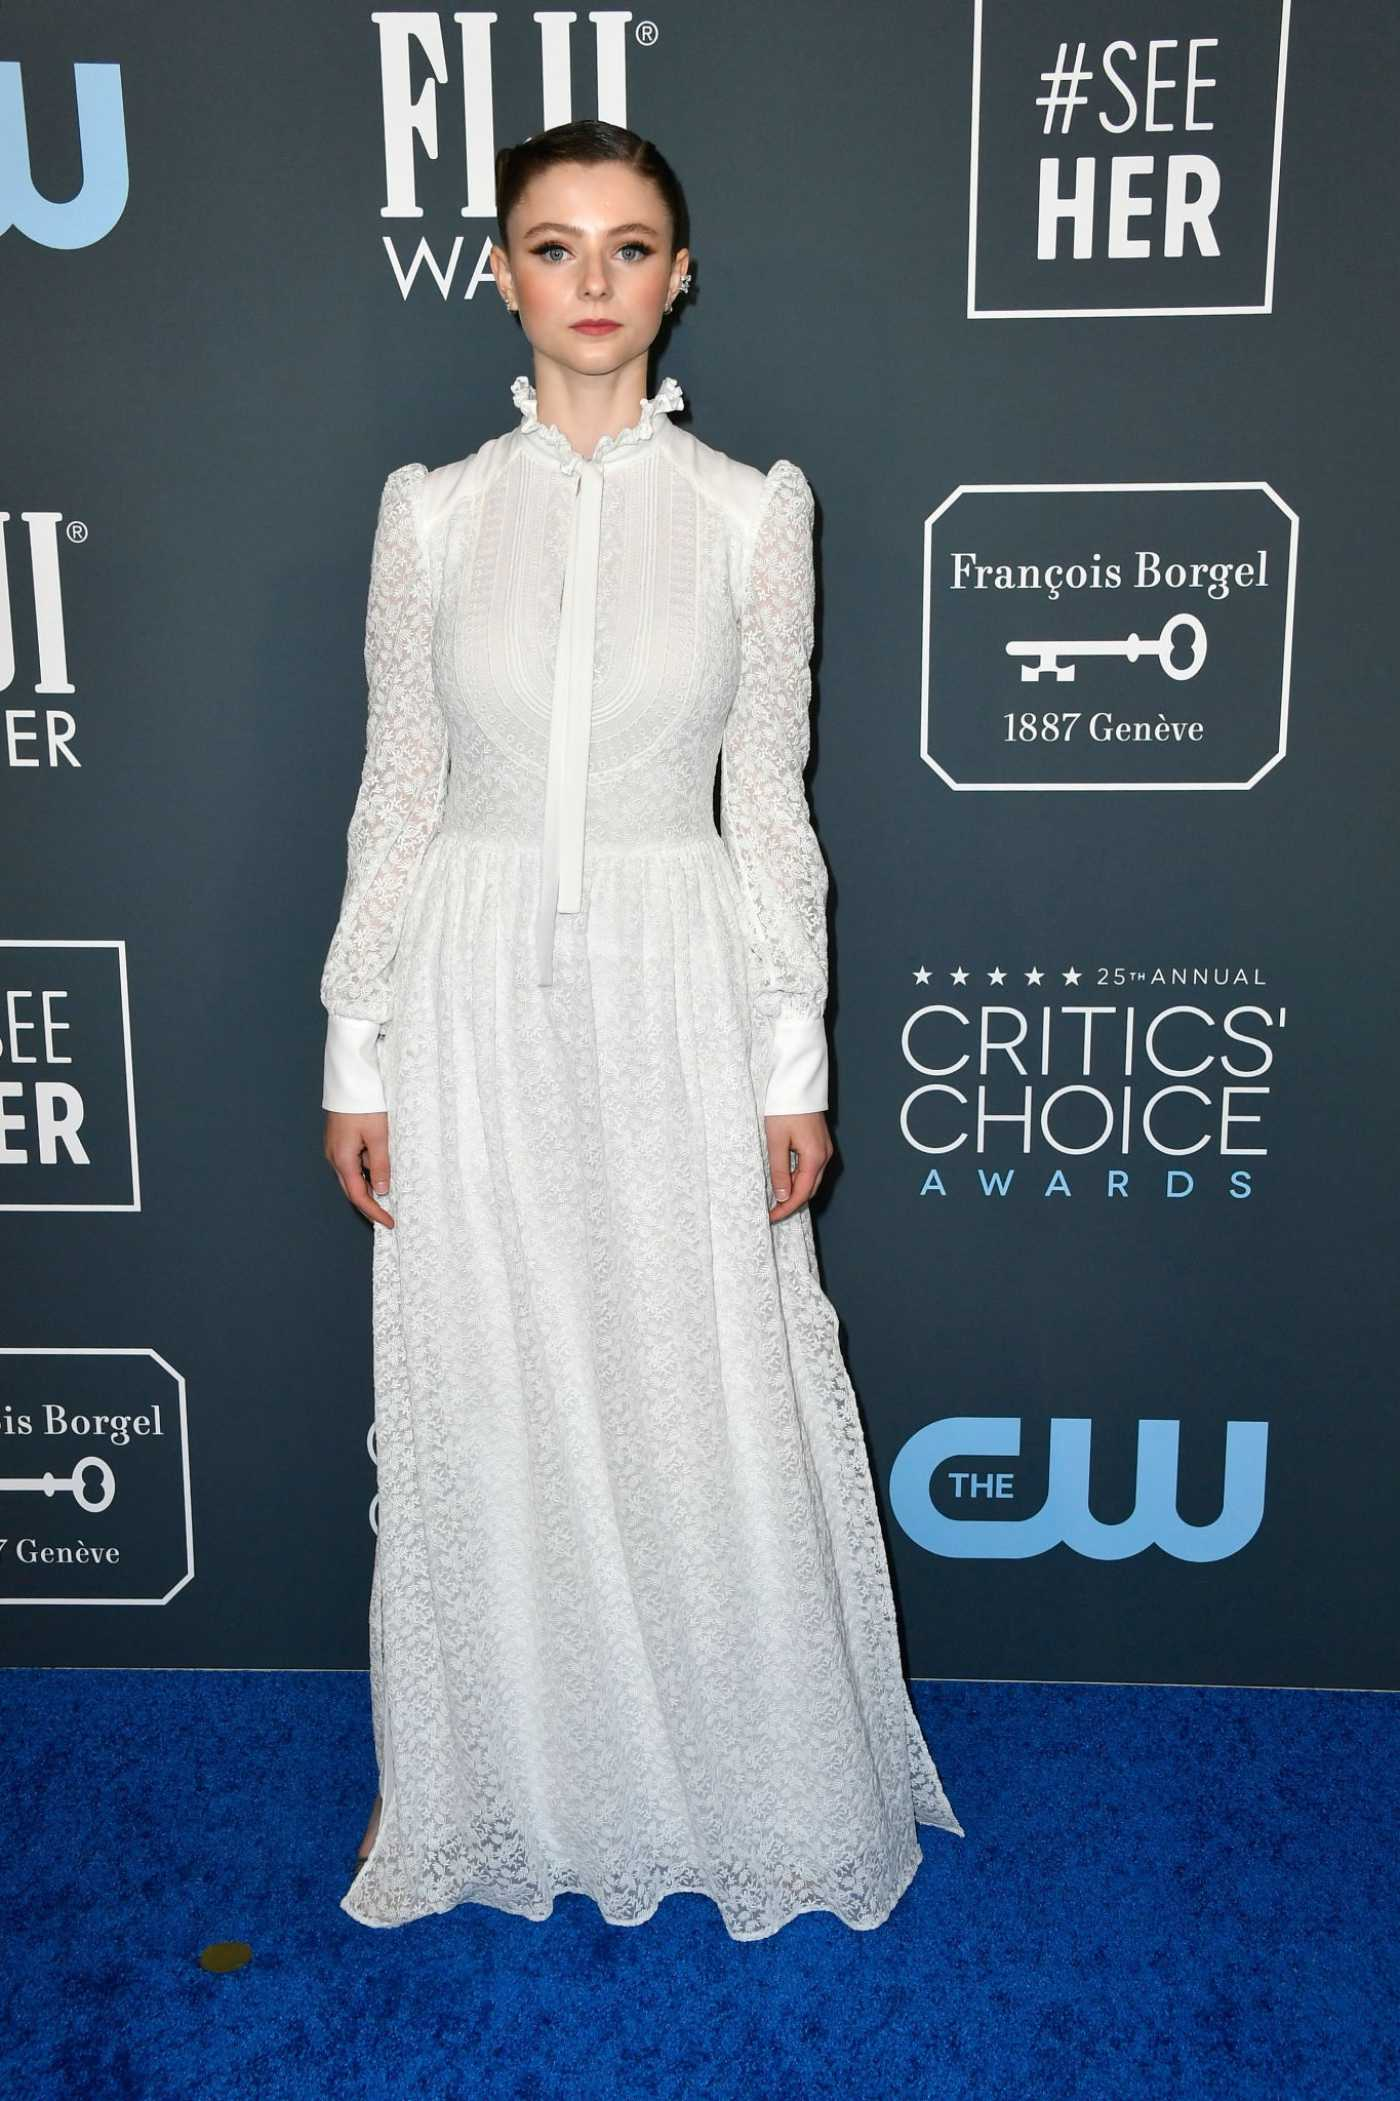 Thomasin McKenzie Attends the 25th Annual Critics Choice Awards in Santa Monica 01/12/2020